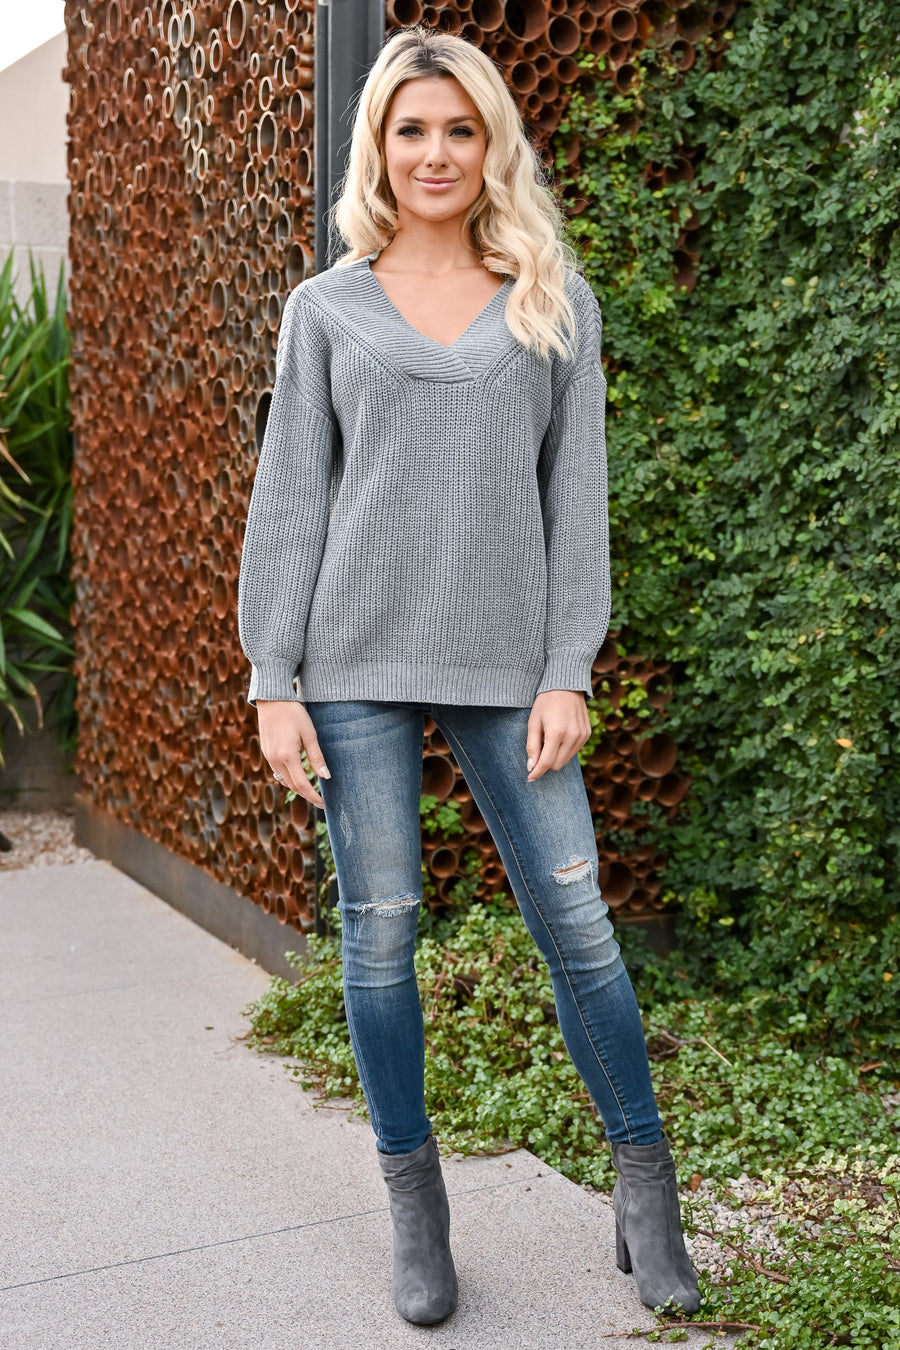 Keep It Up V-Neck Sweater - Grey womens trendy oversized v-neck long sleeve ribbed knit sweater closet candy front